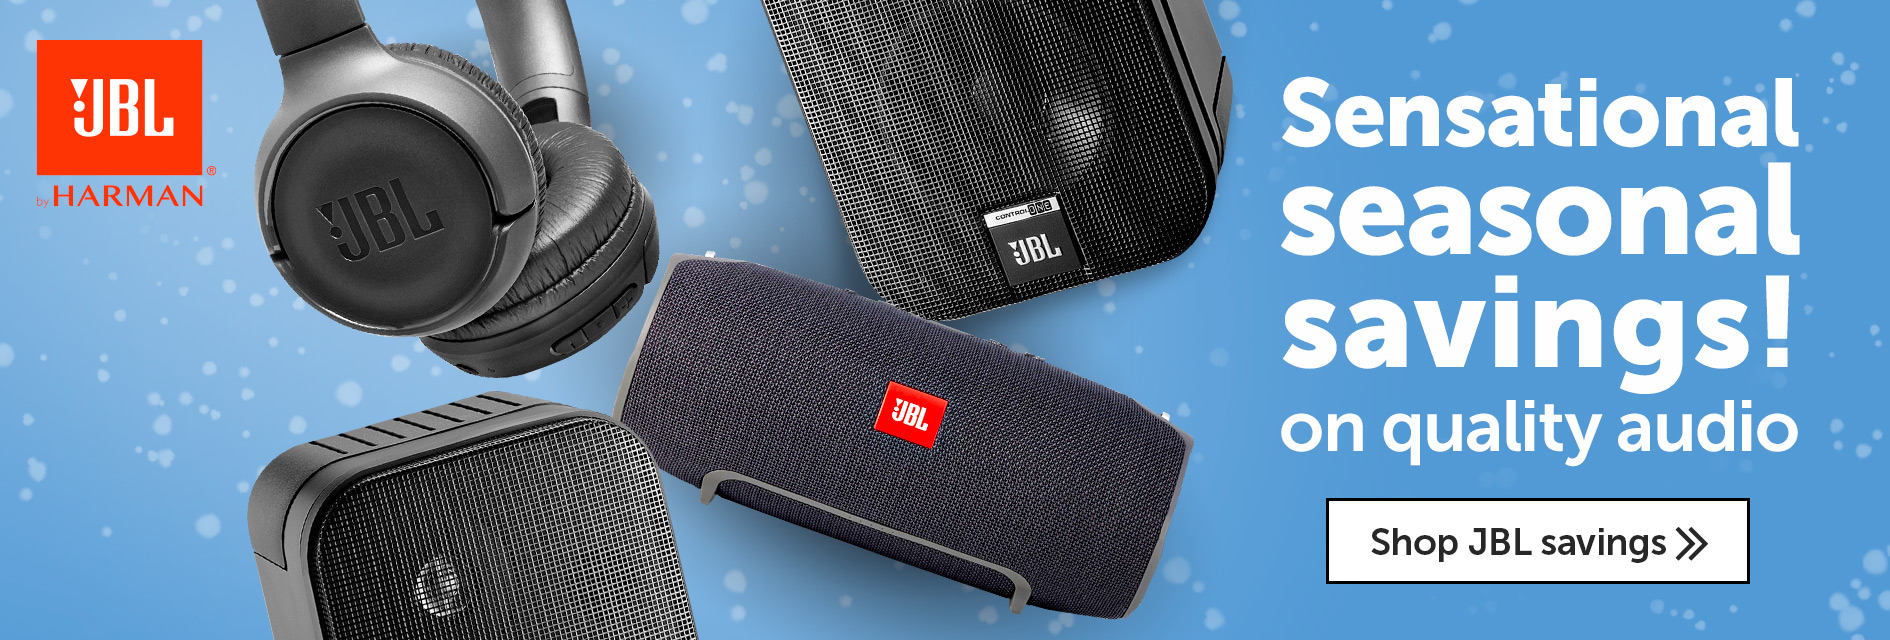 JBL Seasonal Savings